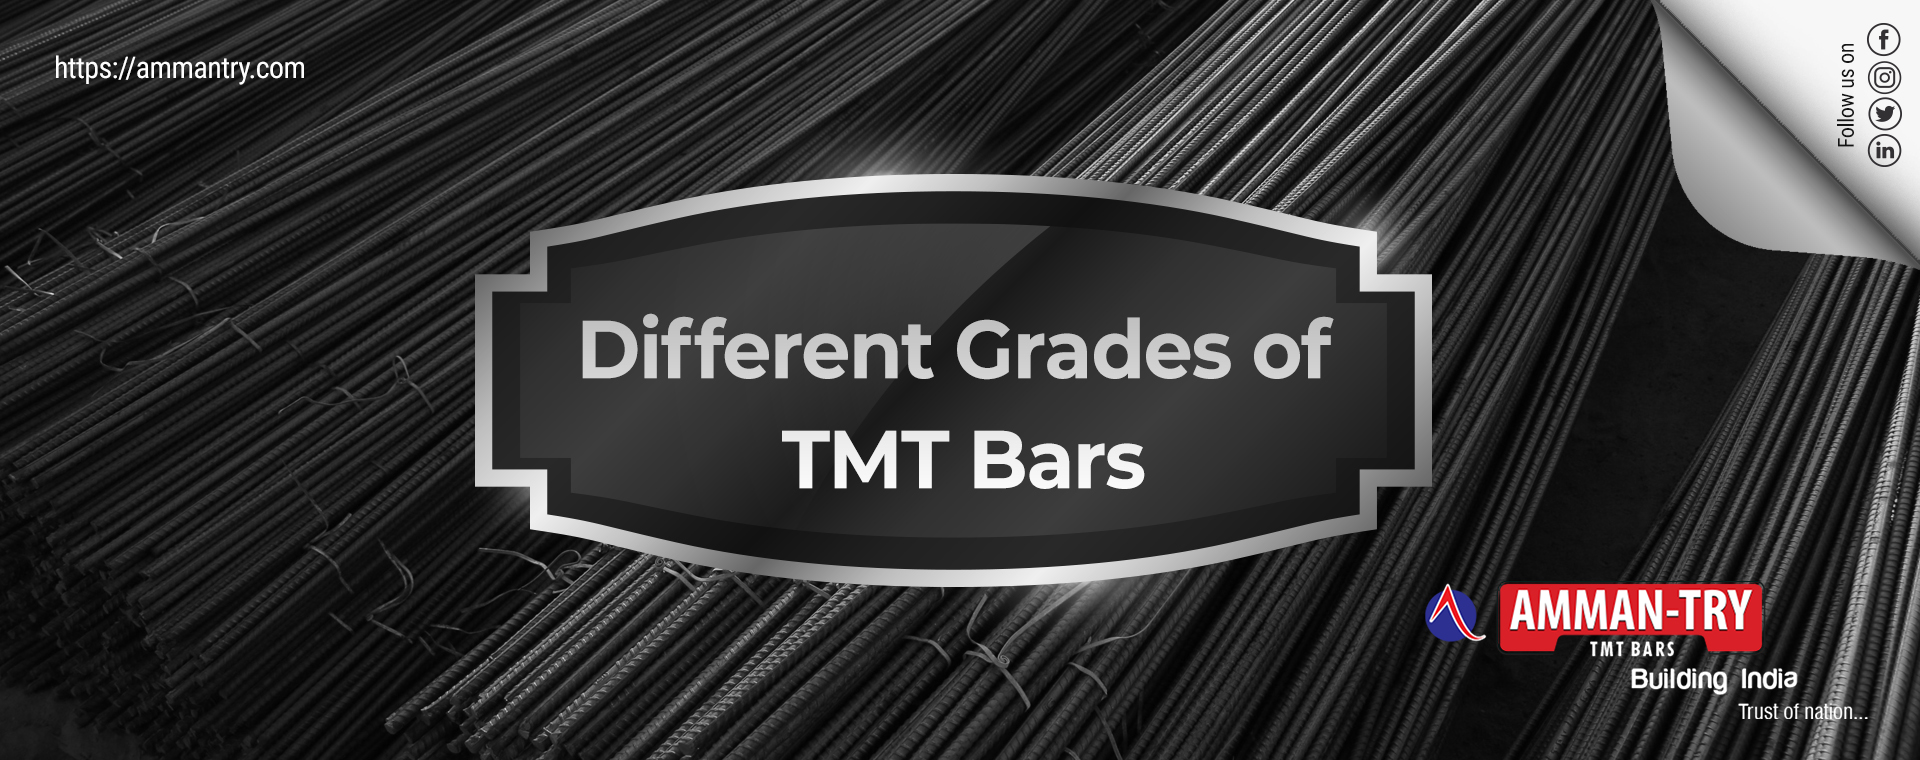 Different Grades of TMT Bars